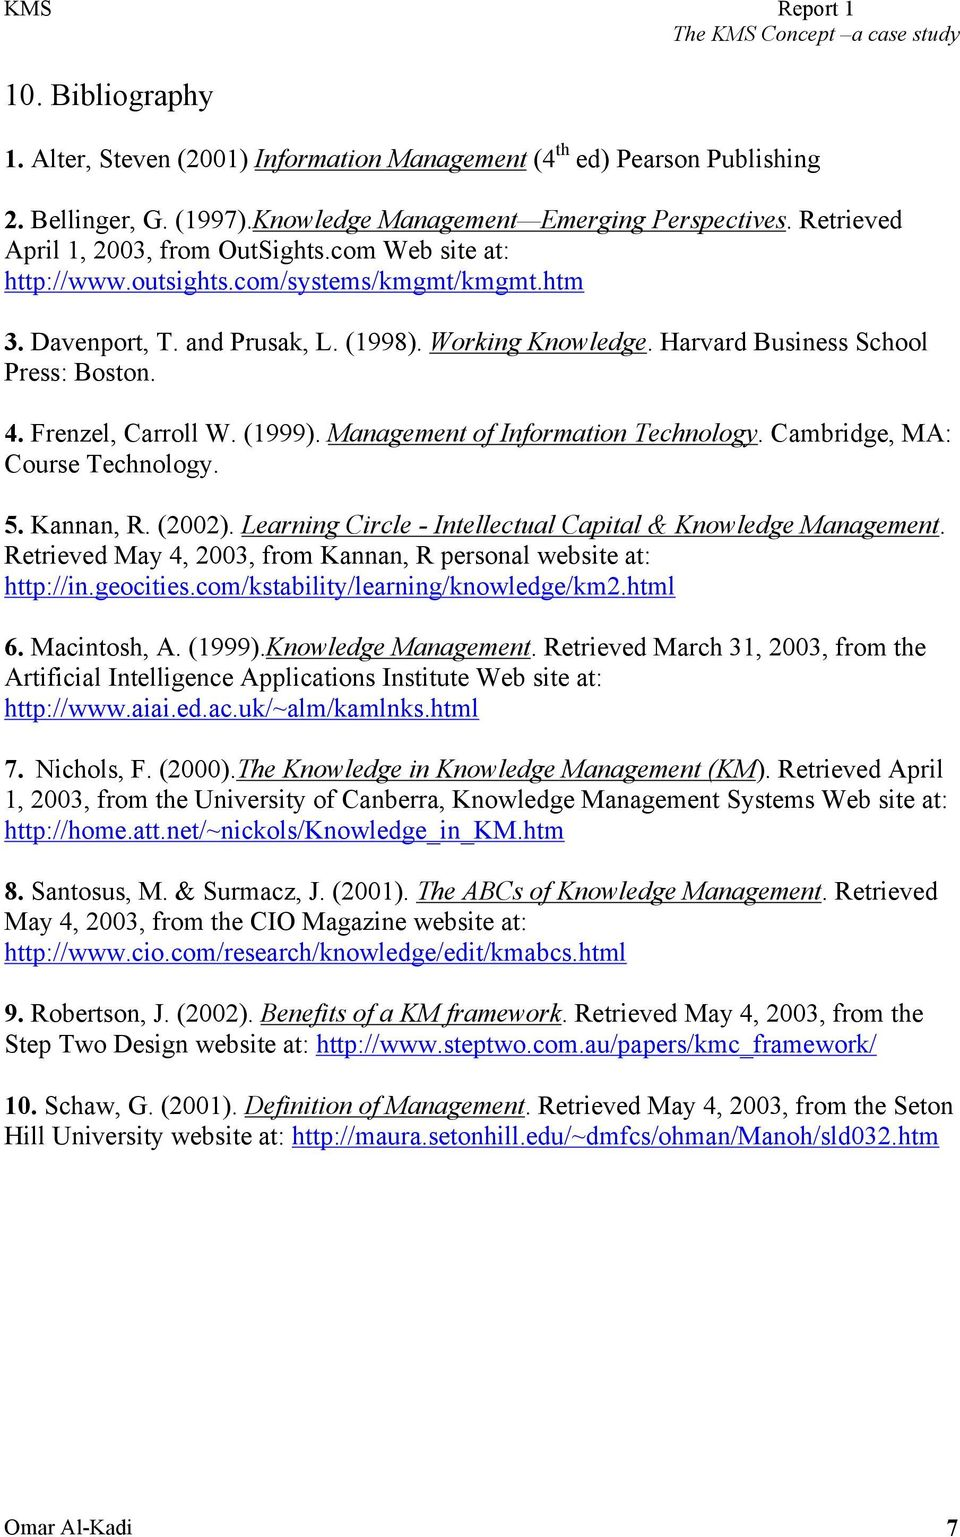 Harvard Business School Press: Boston. 4. Frenzel, Carroll W. (1999). Management of Information Technology. Cambridge, MA: Course Technology. 5. Kannan, R. (2002).